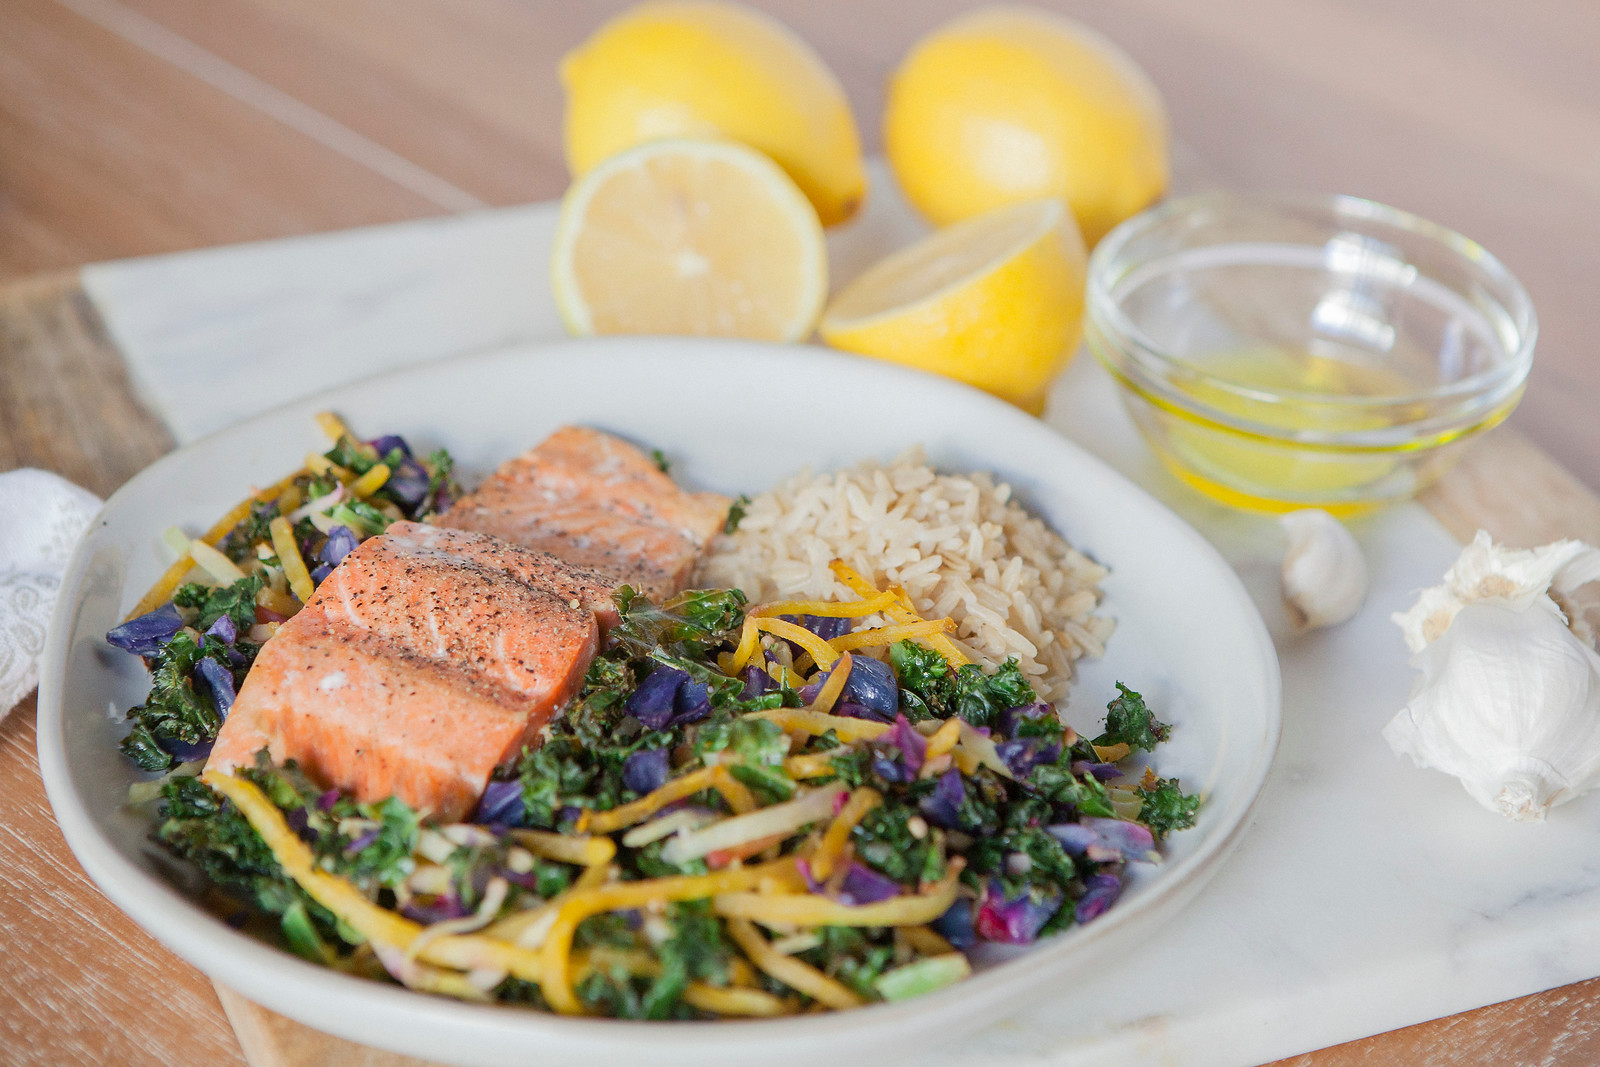 0005_NutritionTwins-kale-beet-salmon